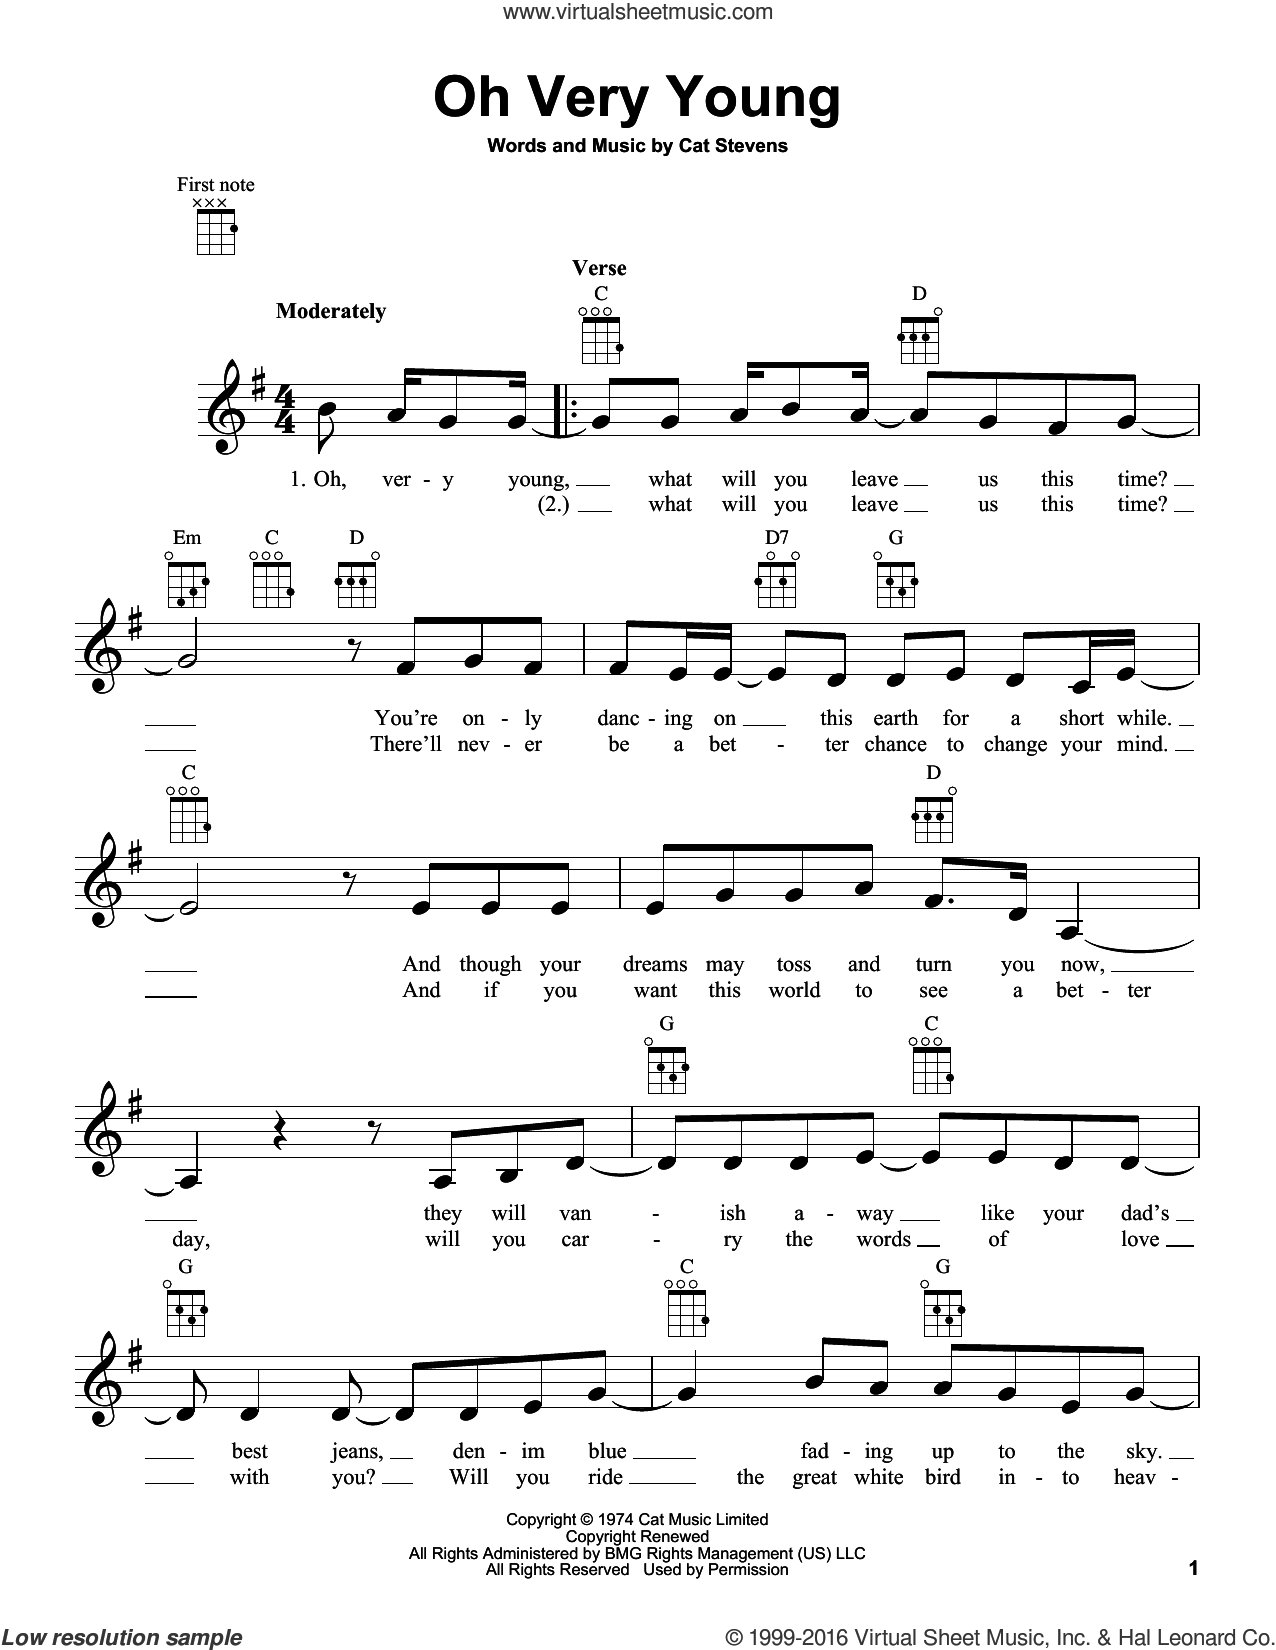 Oh Very Young sheet music for ukulele by Yusuf/Cat Stevens, Yusuf Islam and Cat Stevens. Score Image Preview.